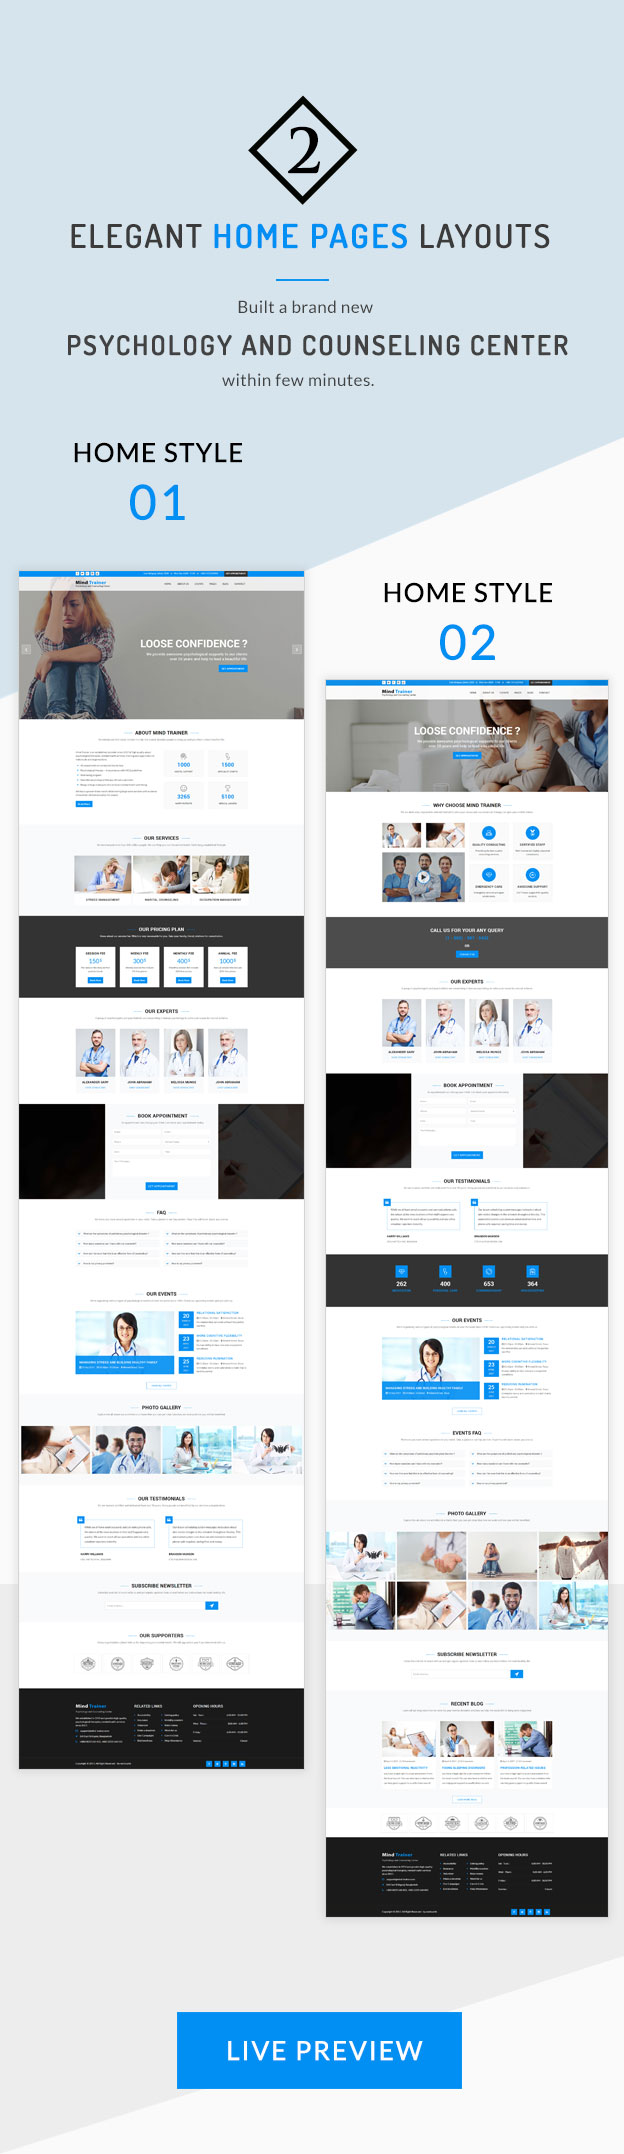 Mind Trainer - Psychology and Counseling Center HTML5 Template - 4